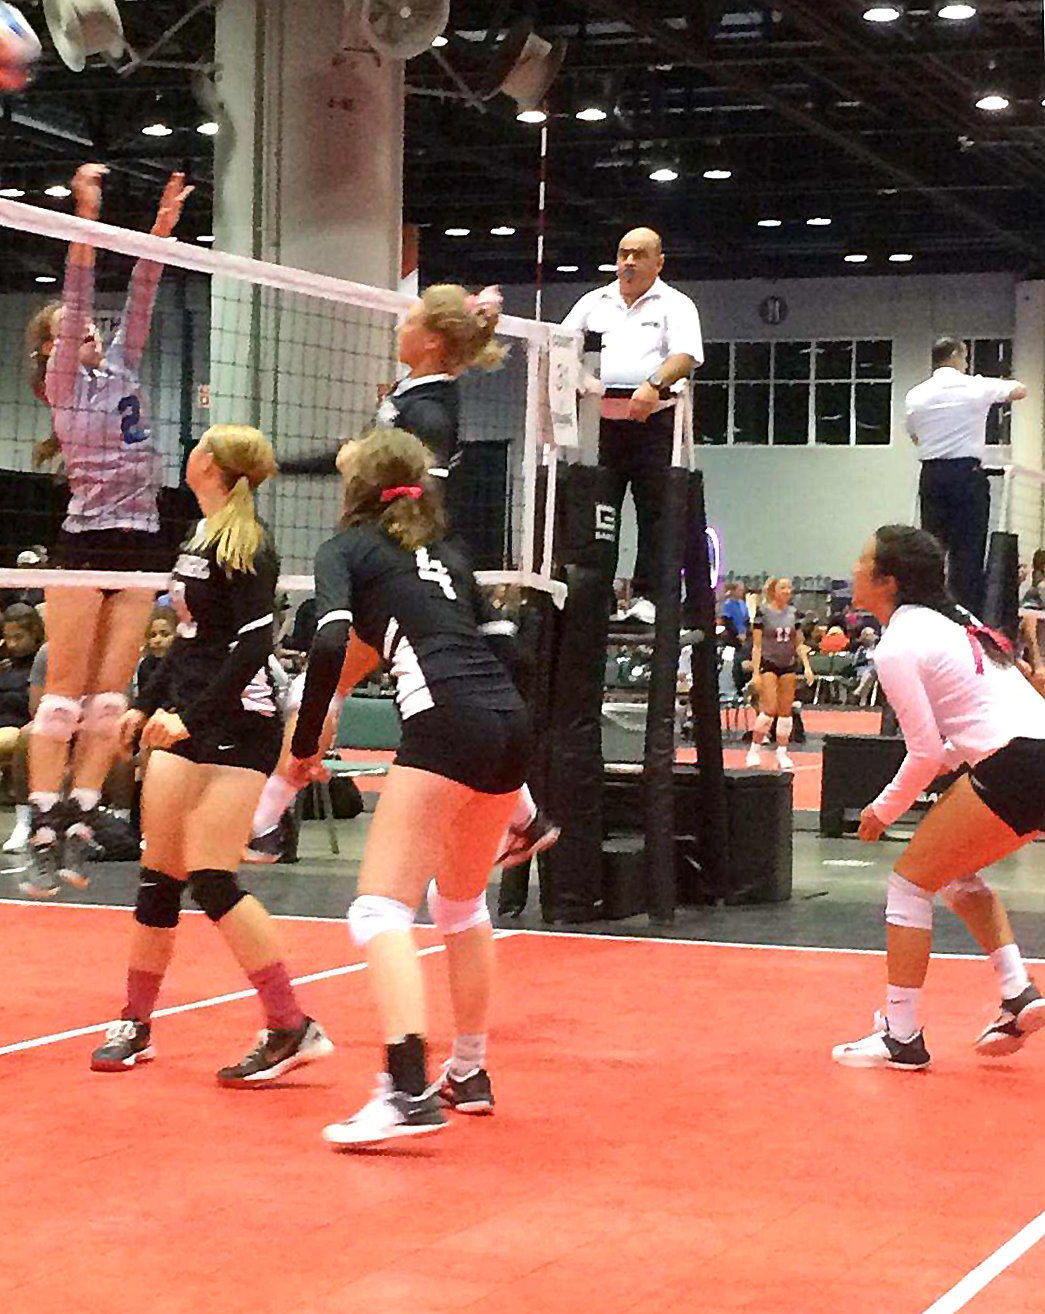 Gold Diggers Aau Volleyball Team Takes On Nationals Sports Bluemountaineagle Com